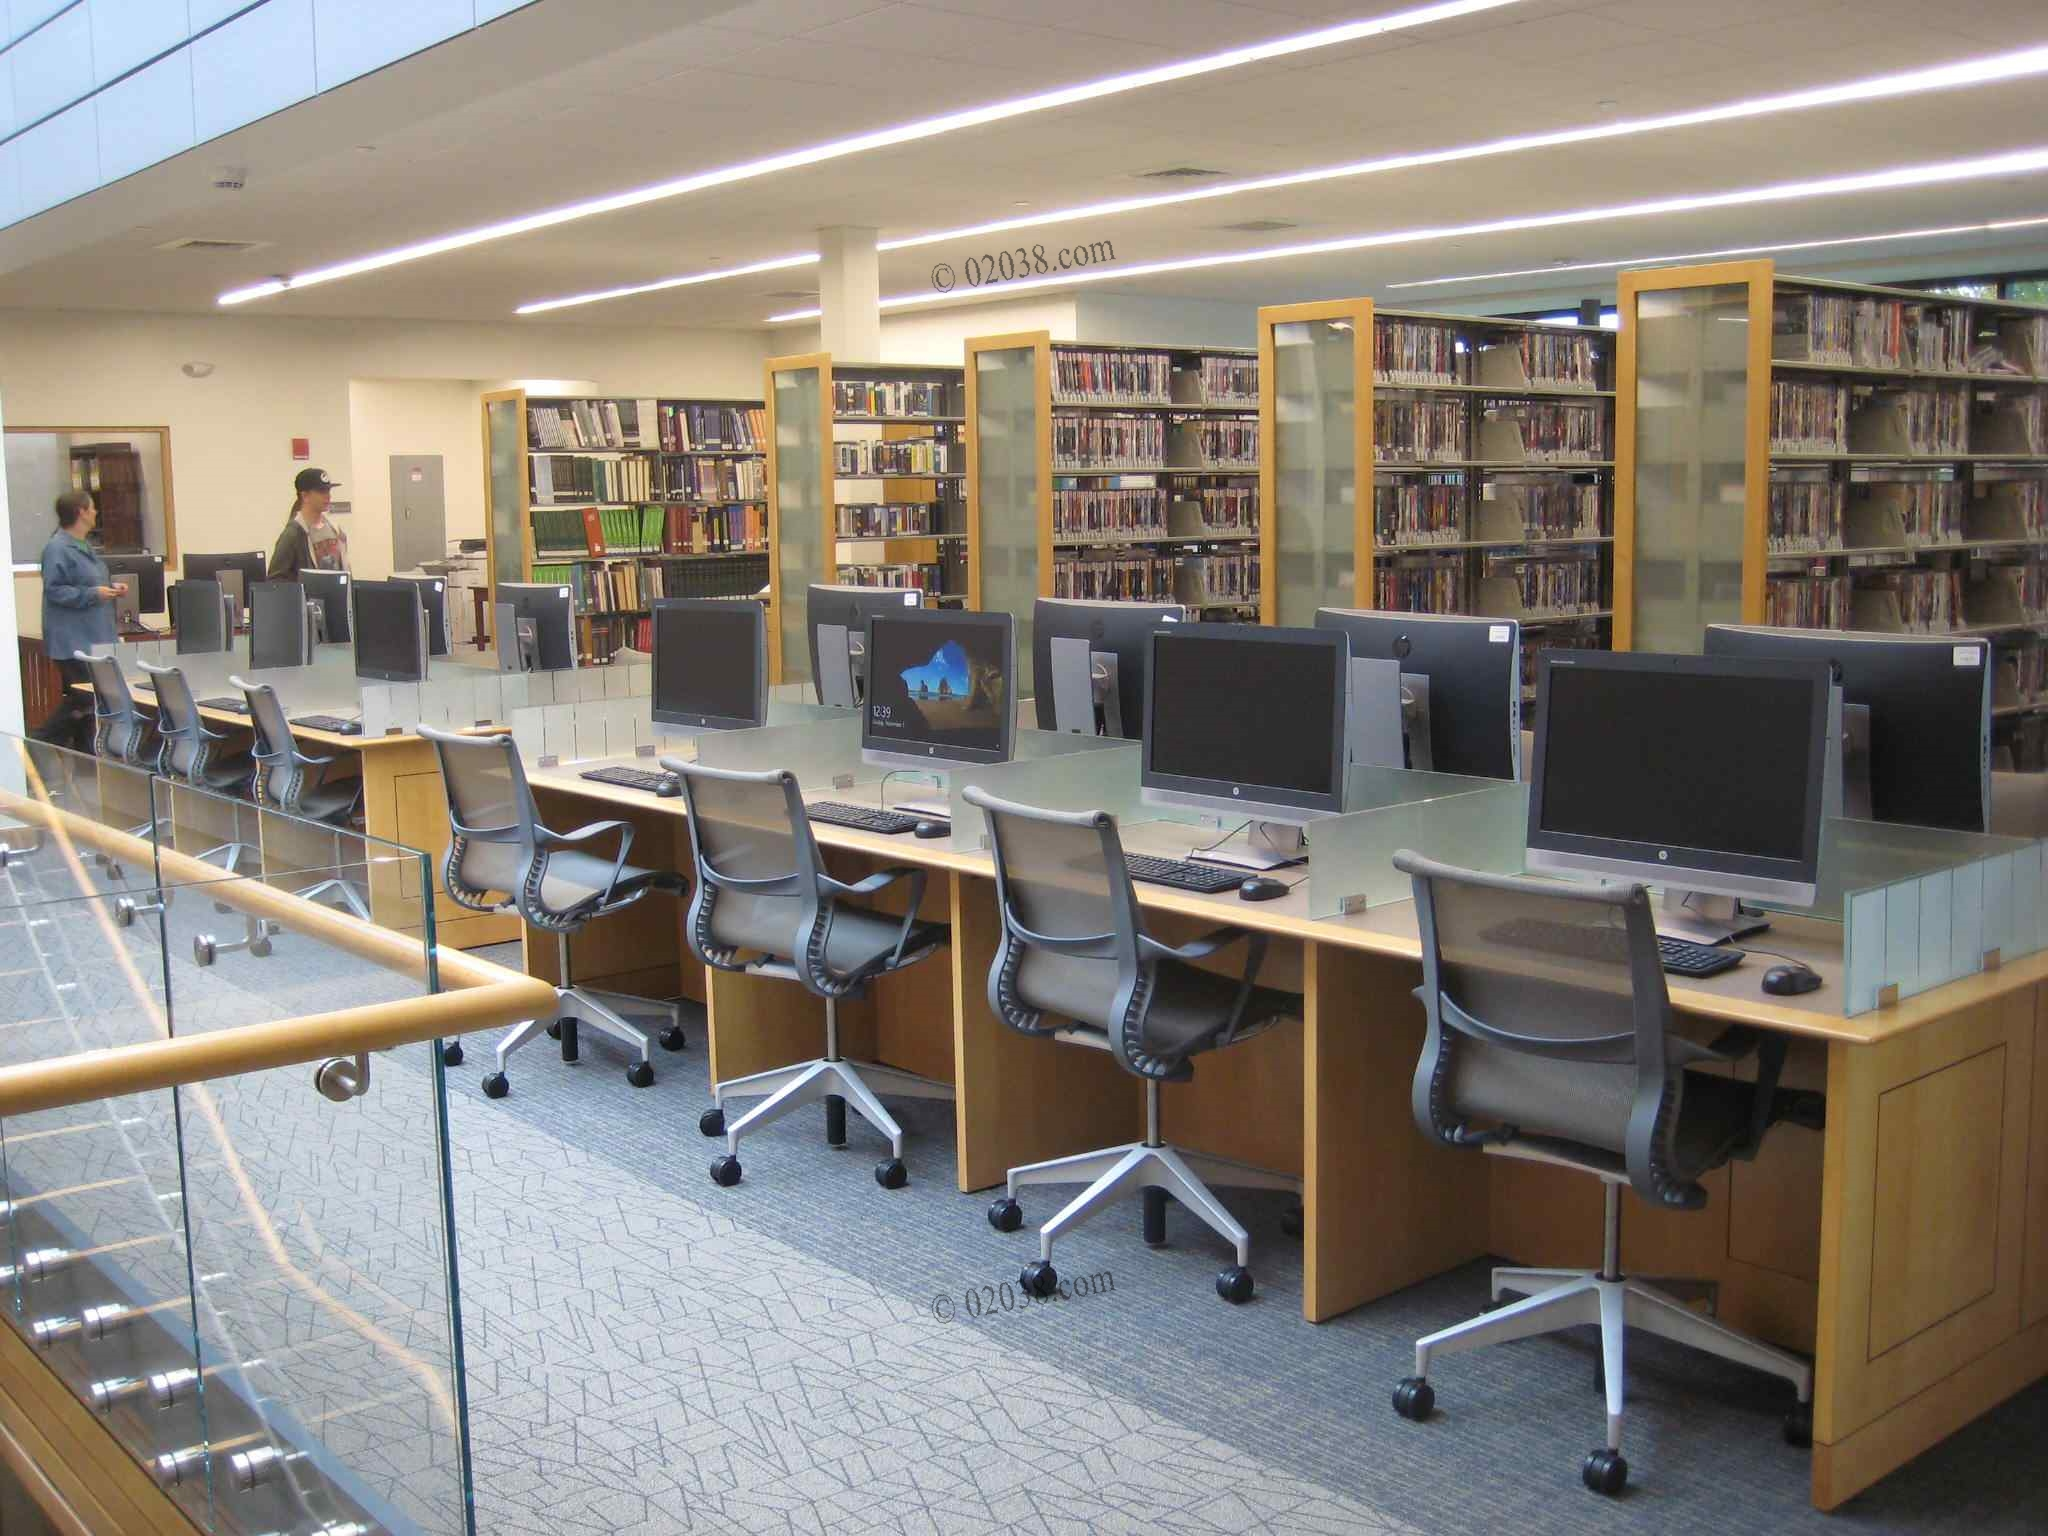 Franklin MA Public Library looking great after expansion